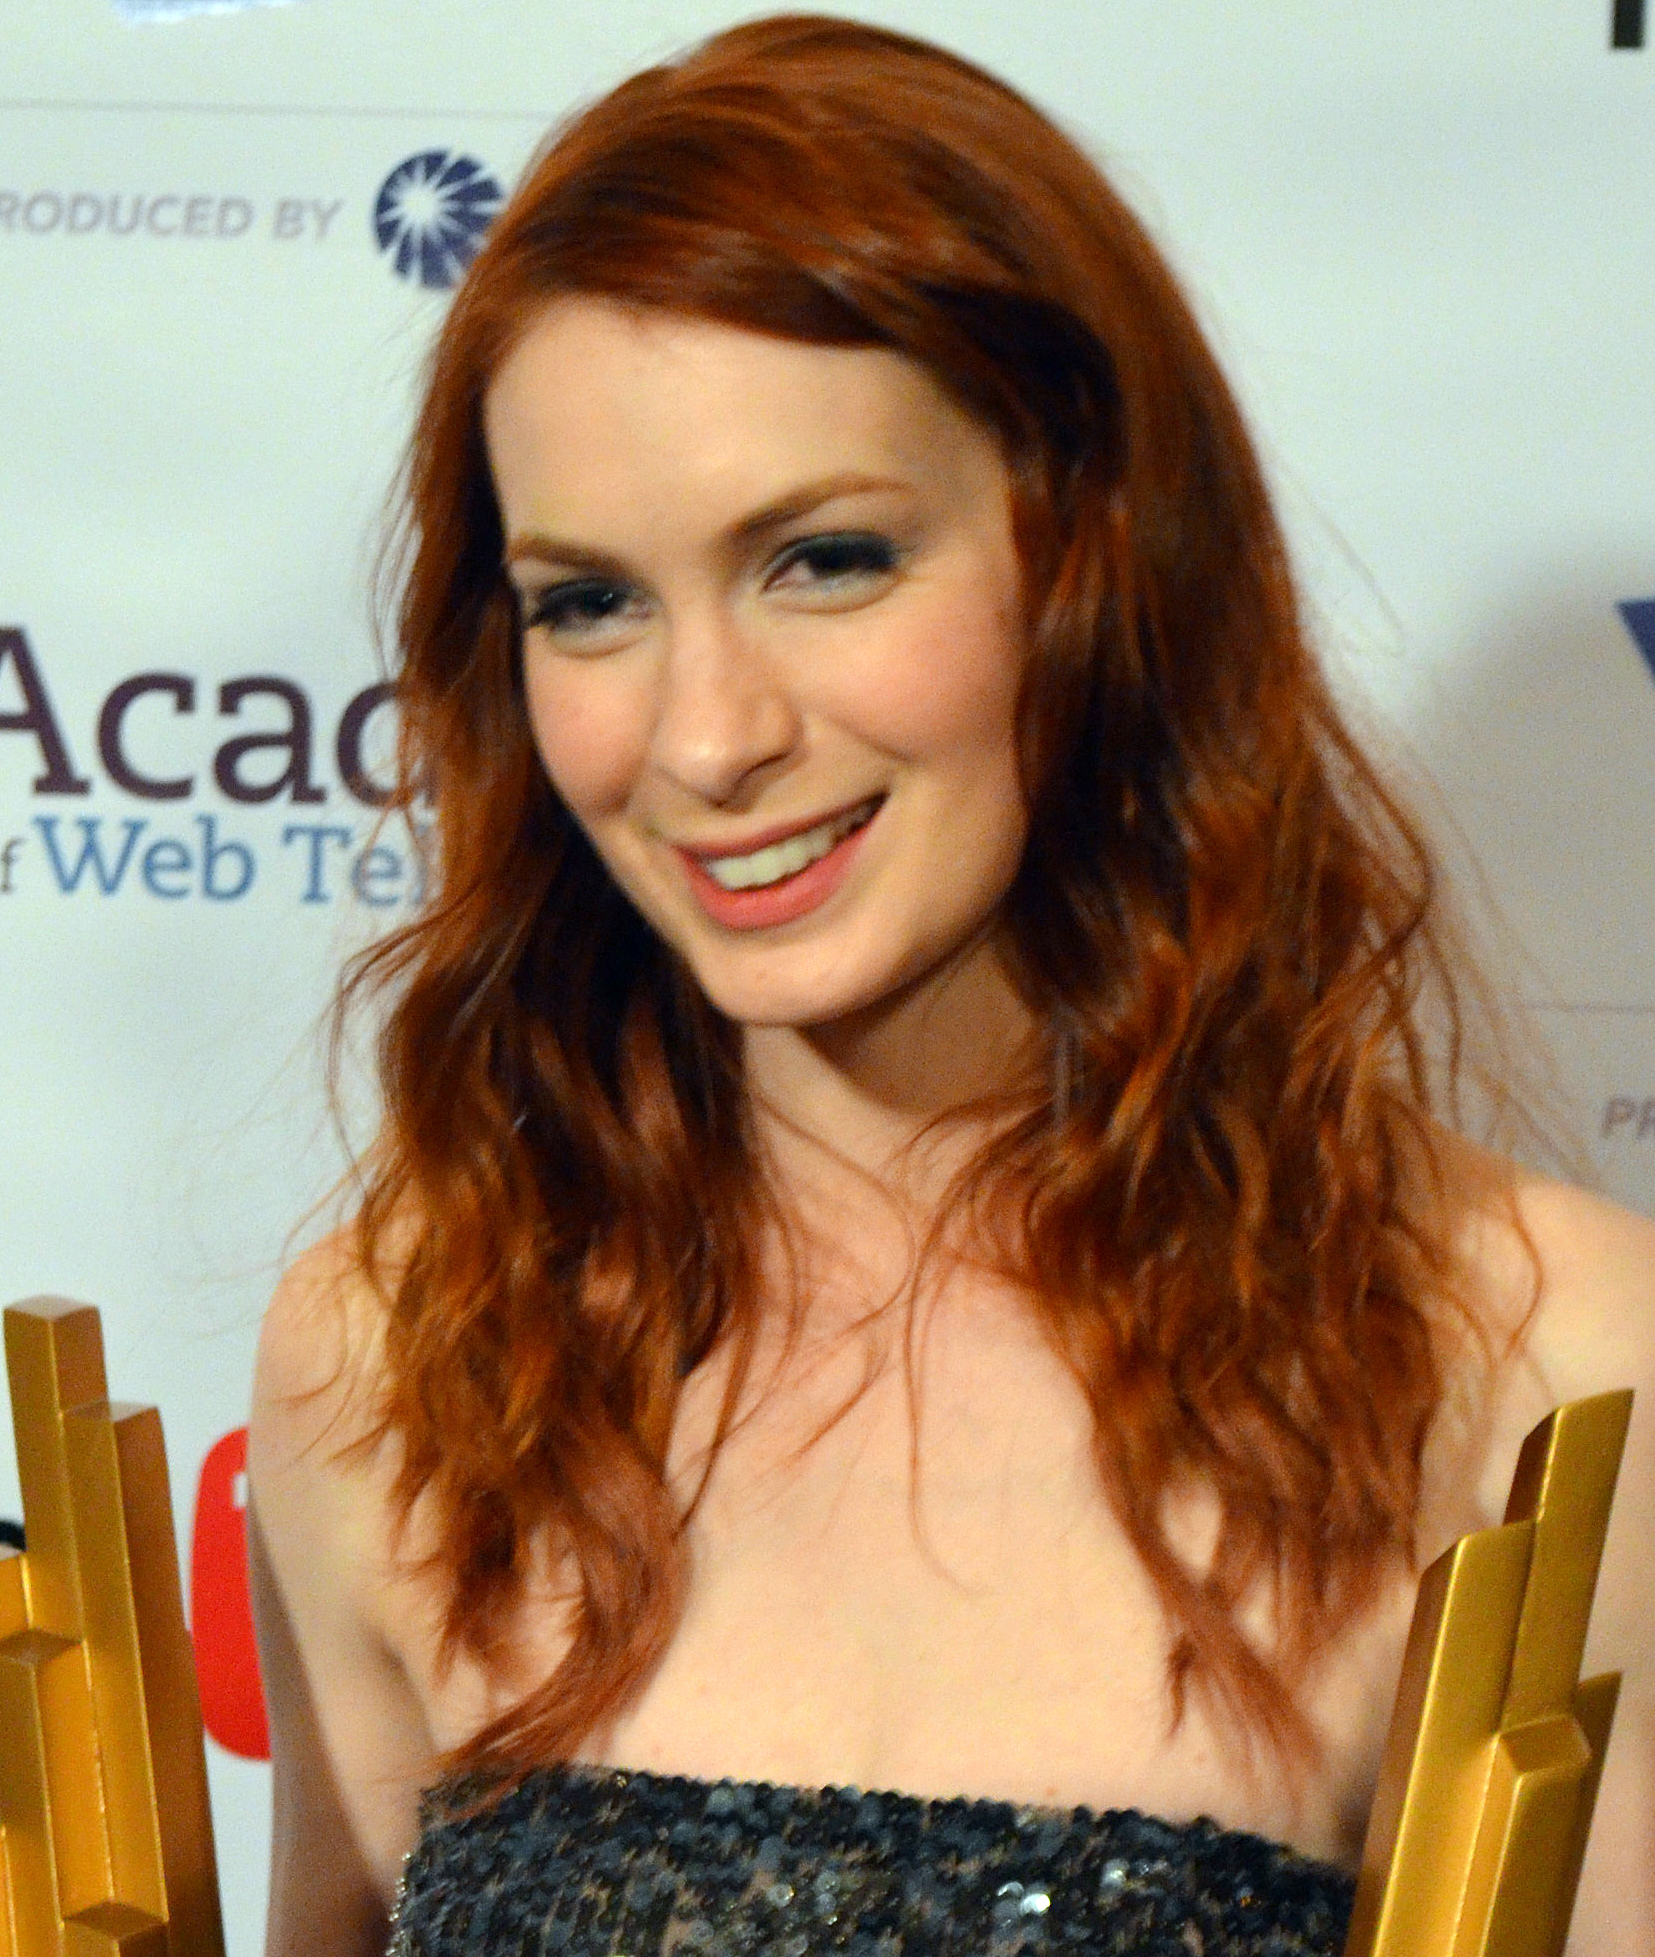 File:Felicia Day 2012.jpg - Wikimedia Commons